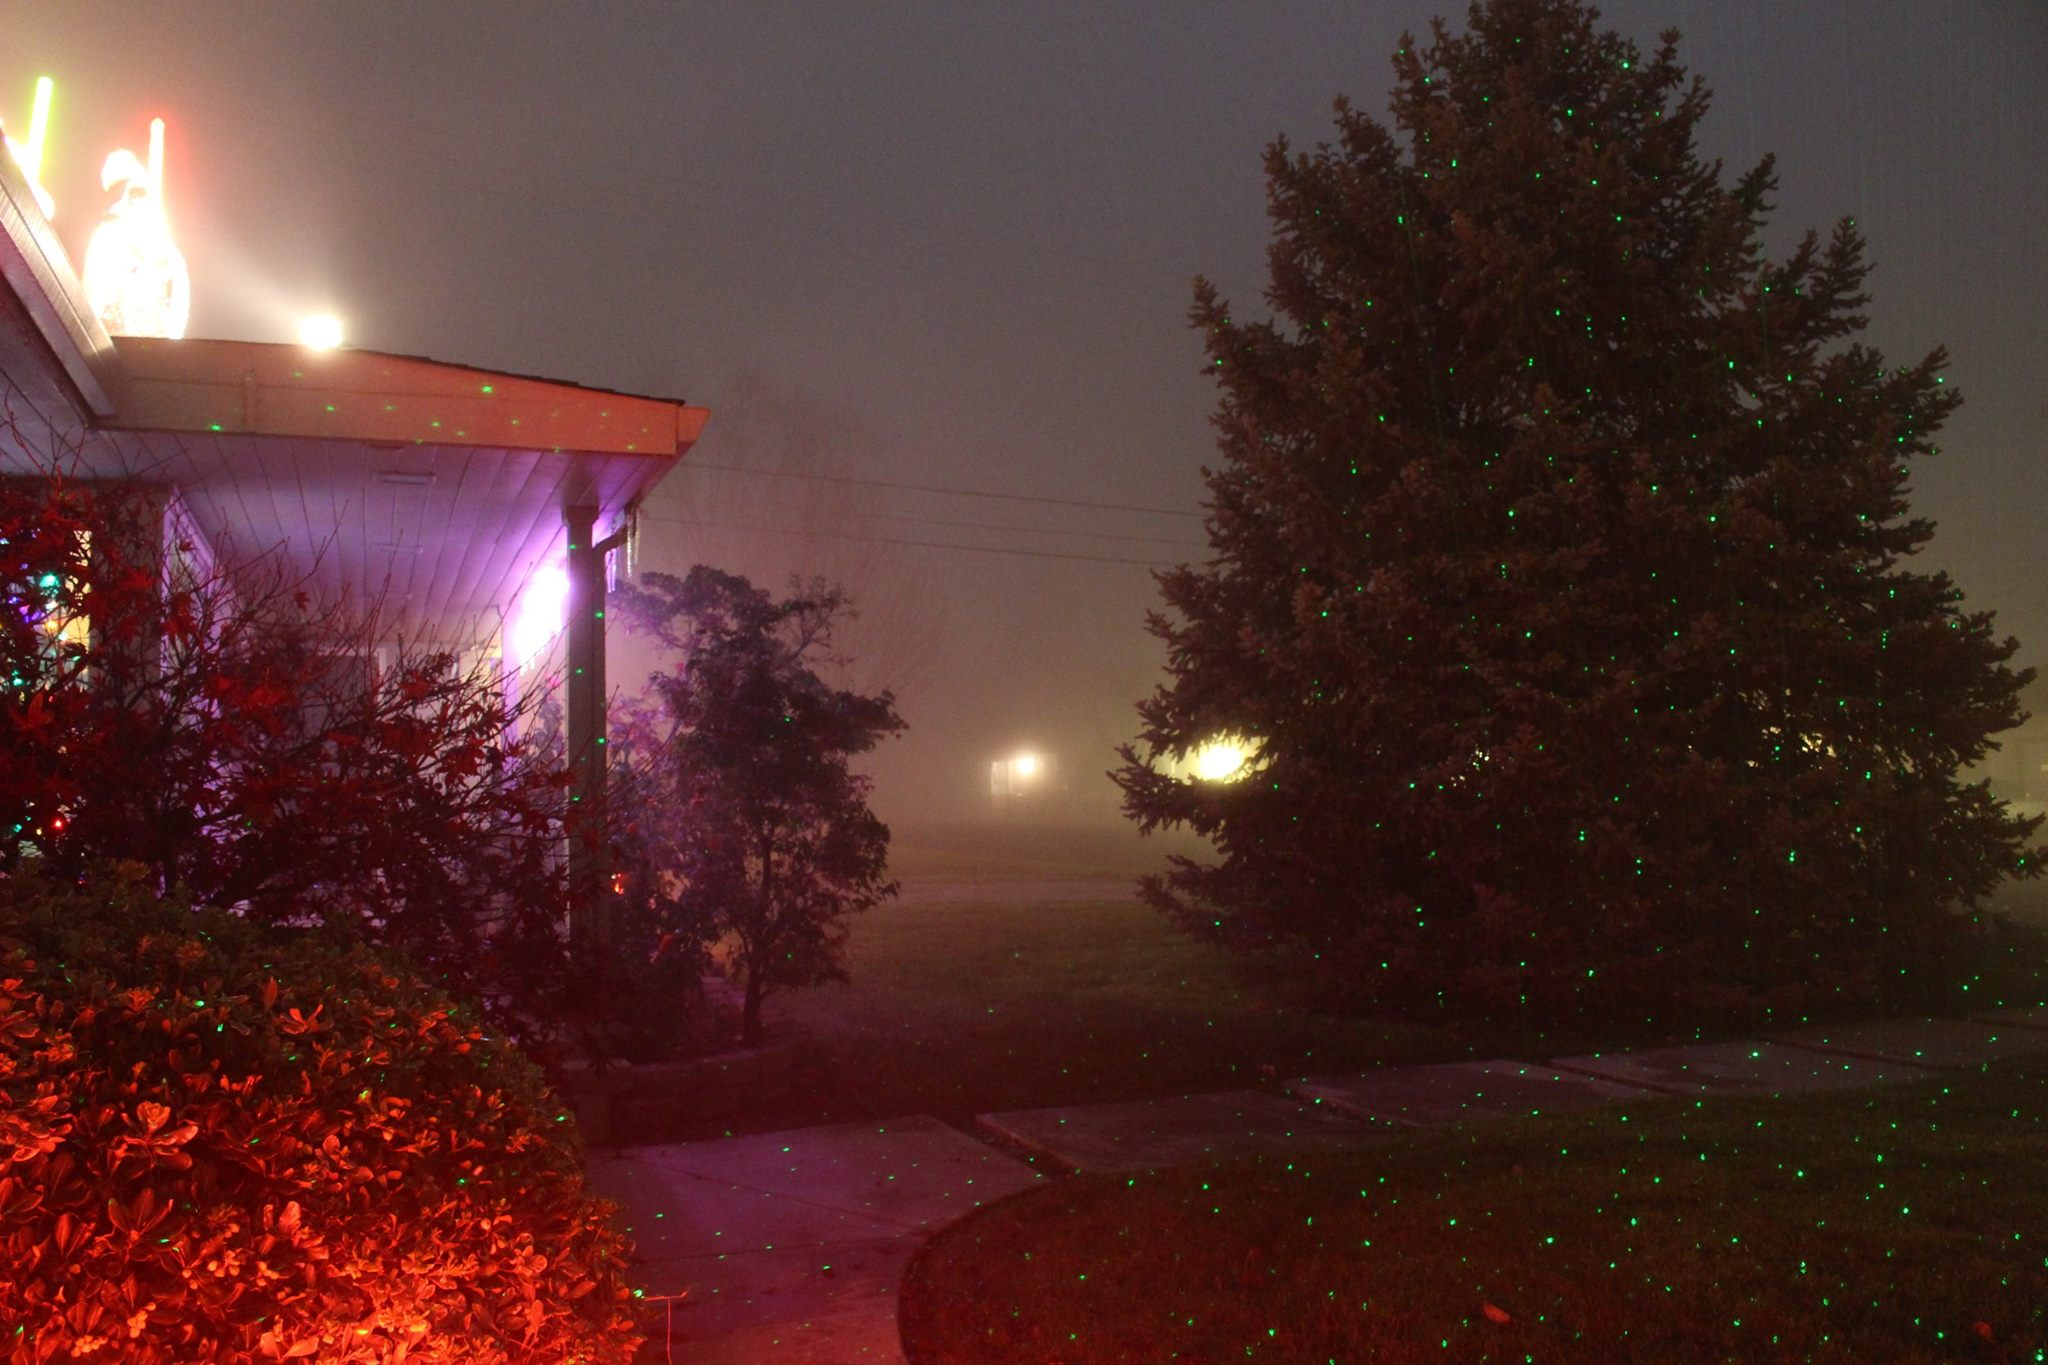 Christmas lighting effects from lasers and fog add to Sacramento